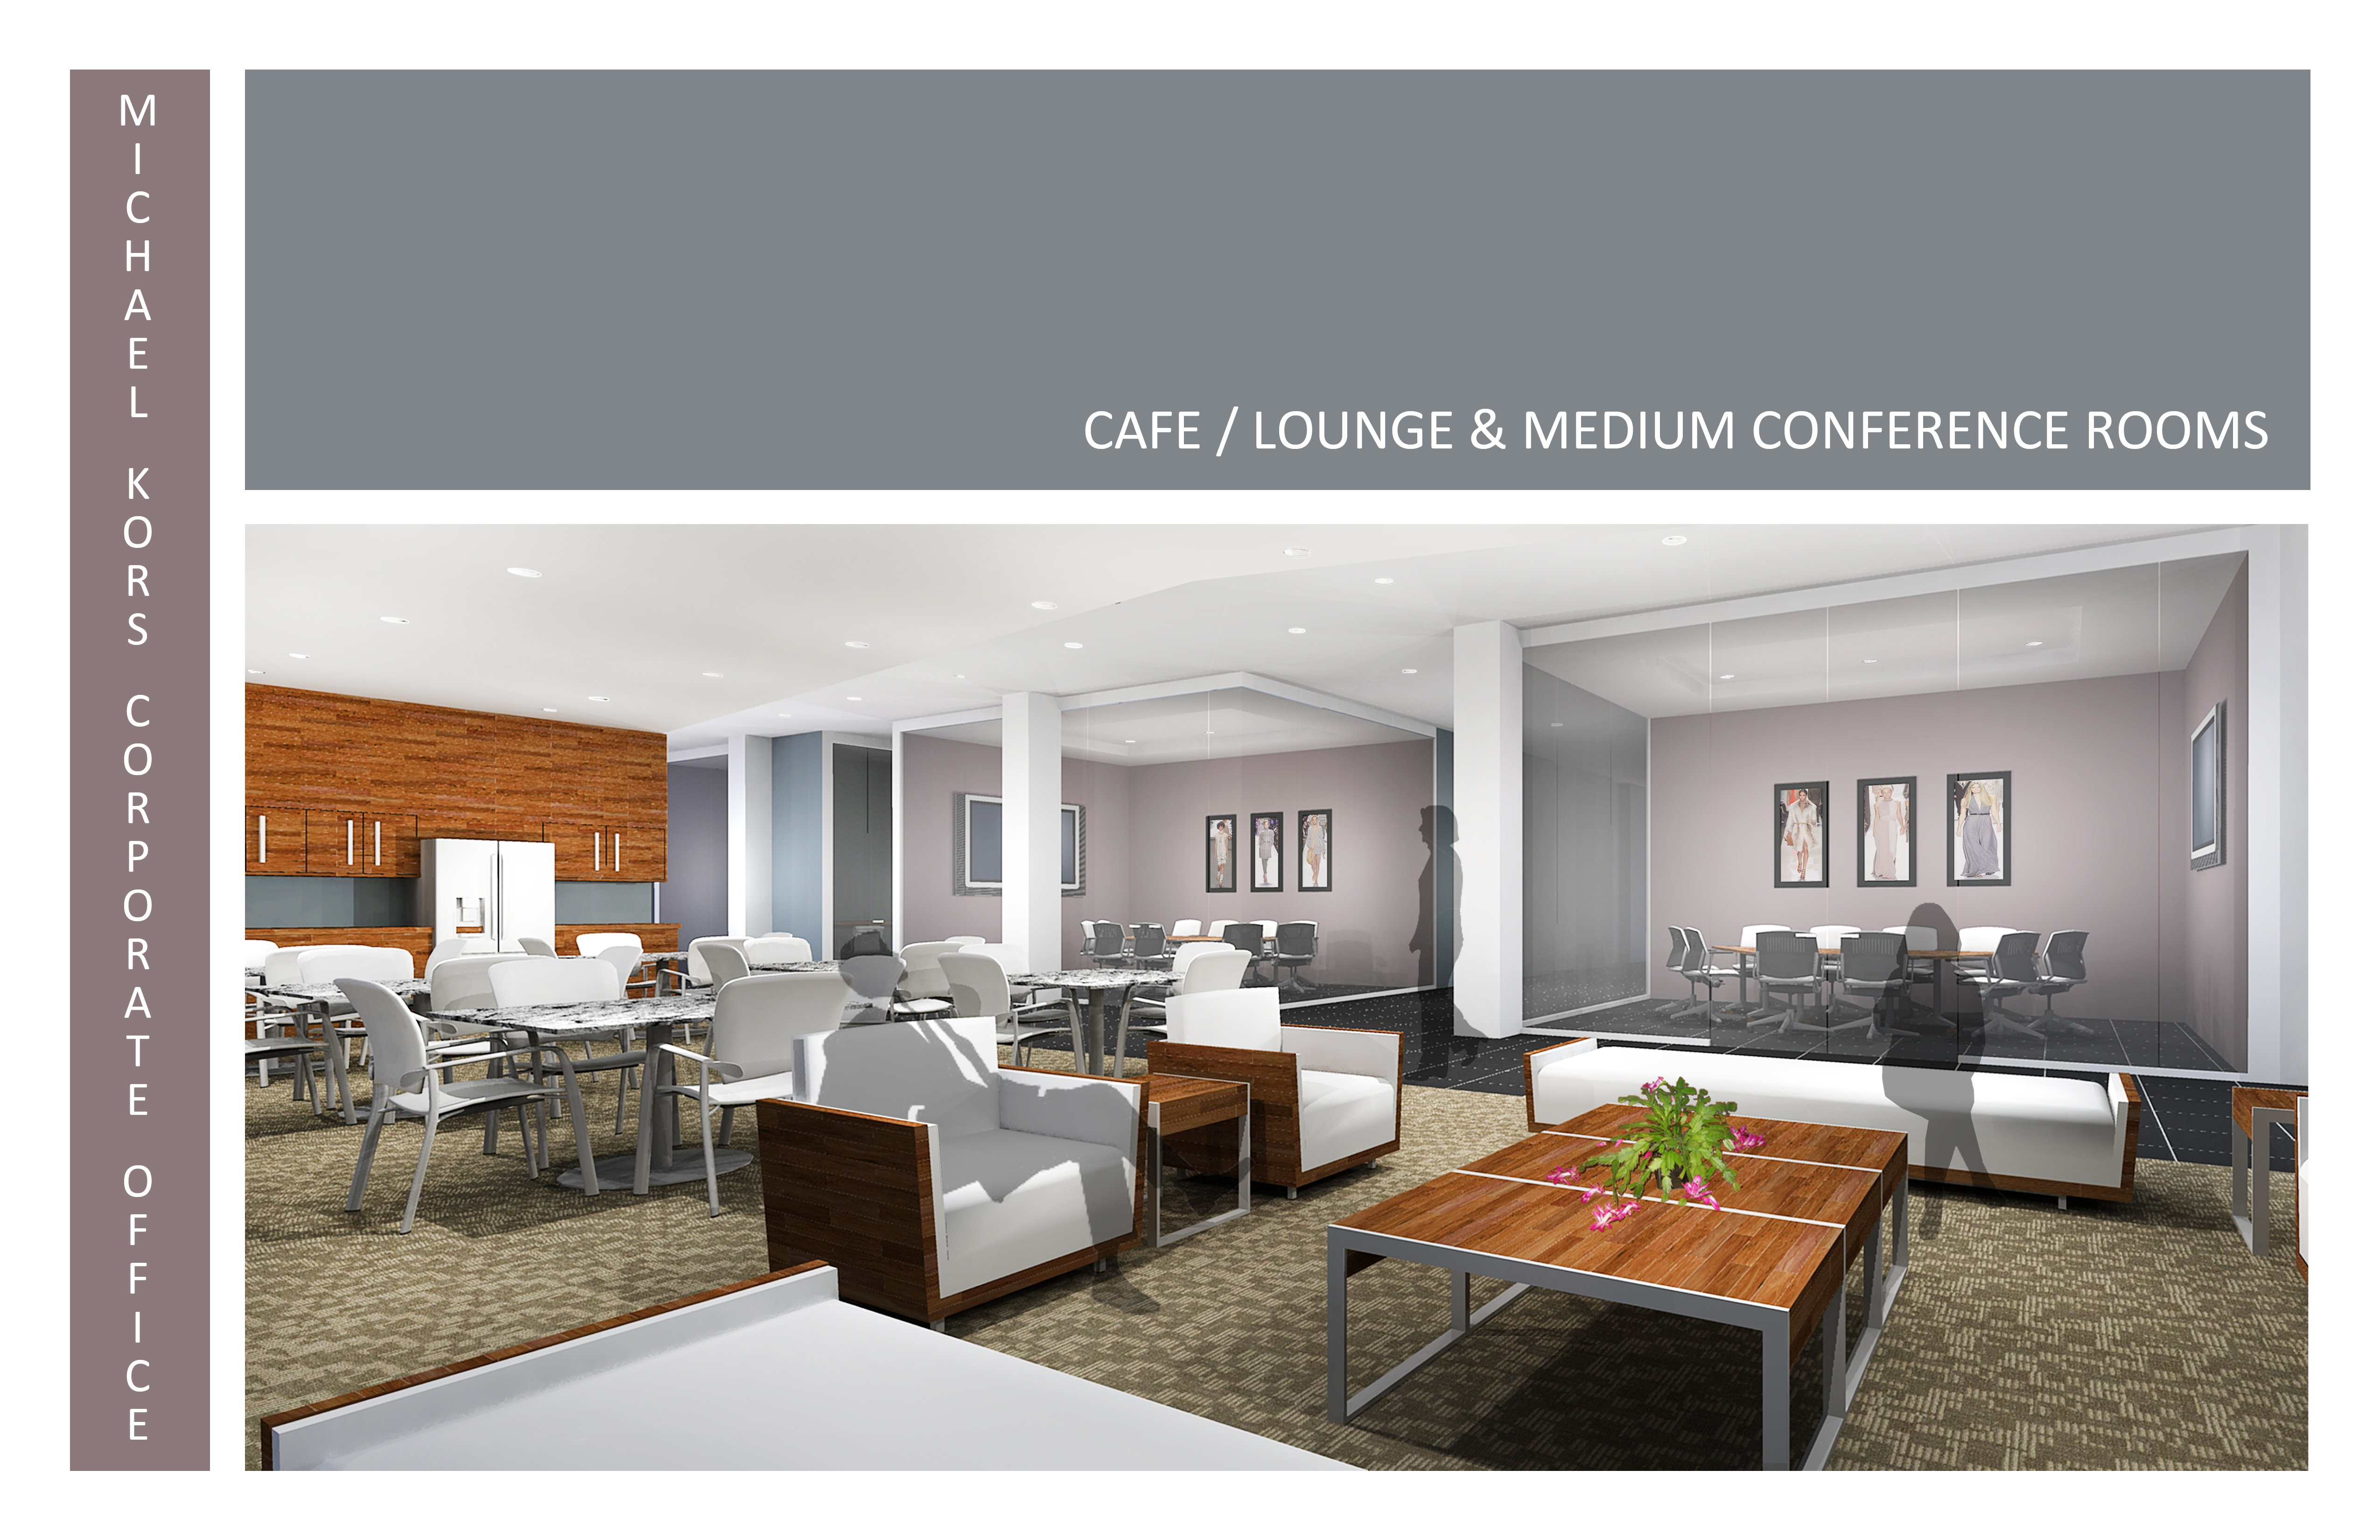 Michael Kors Lounge Conference Rooms